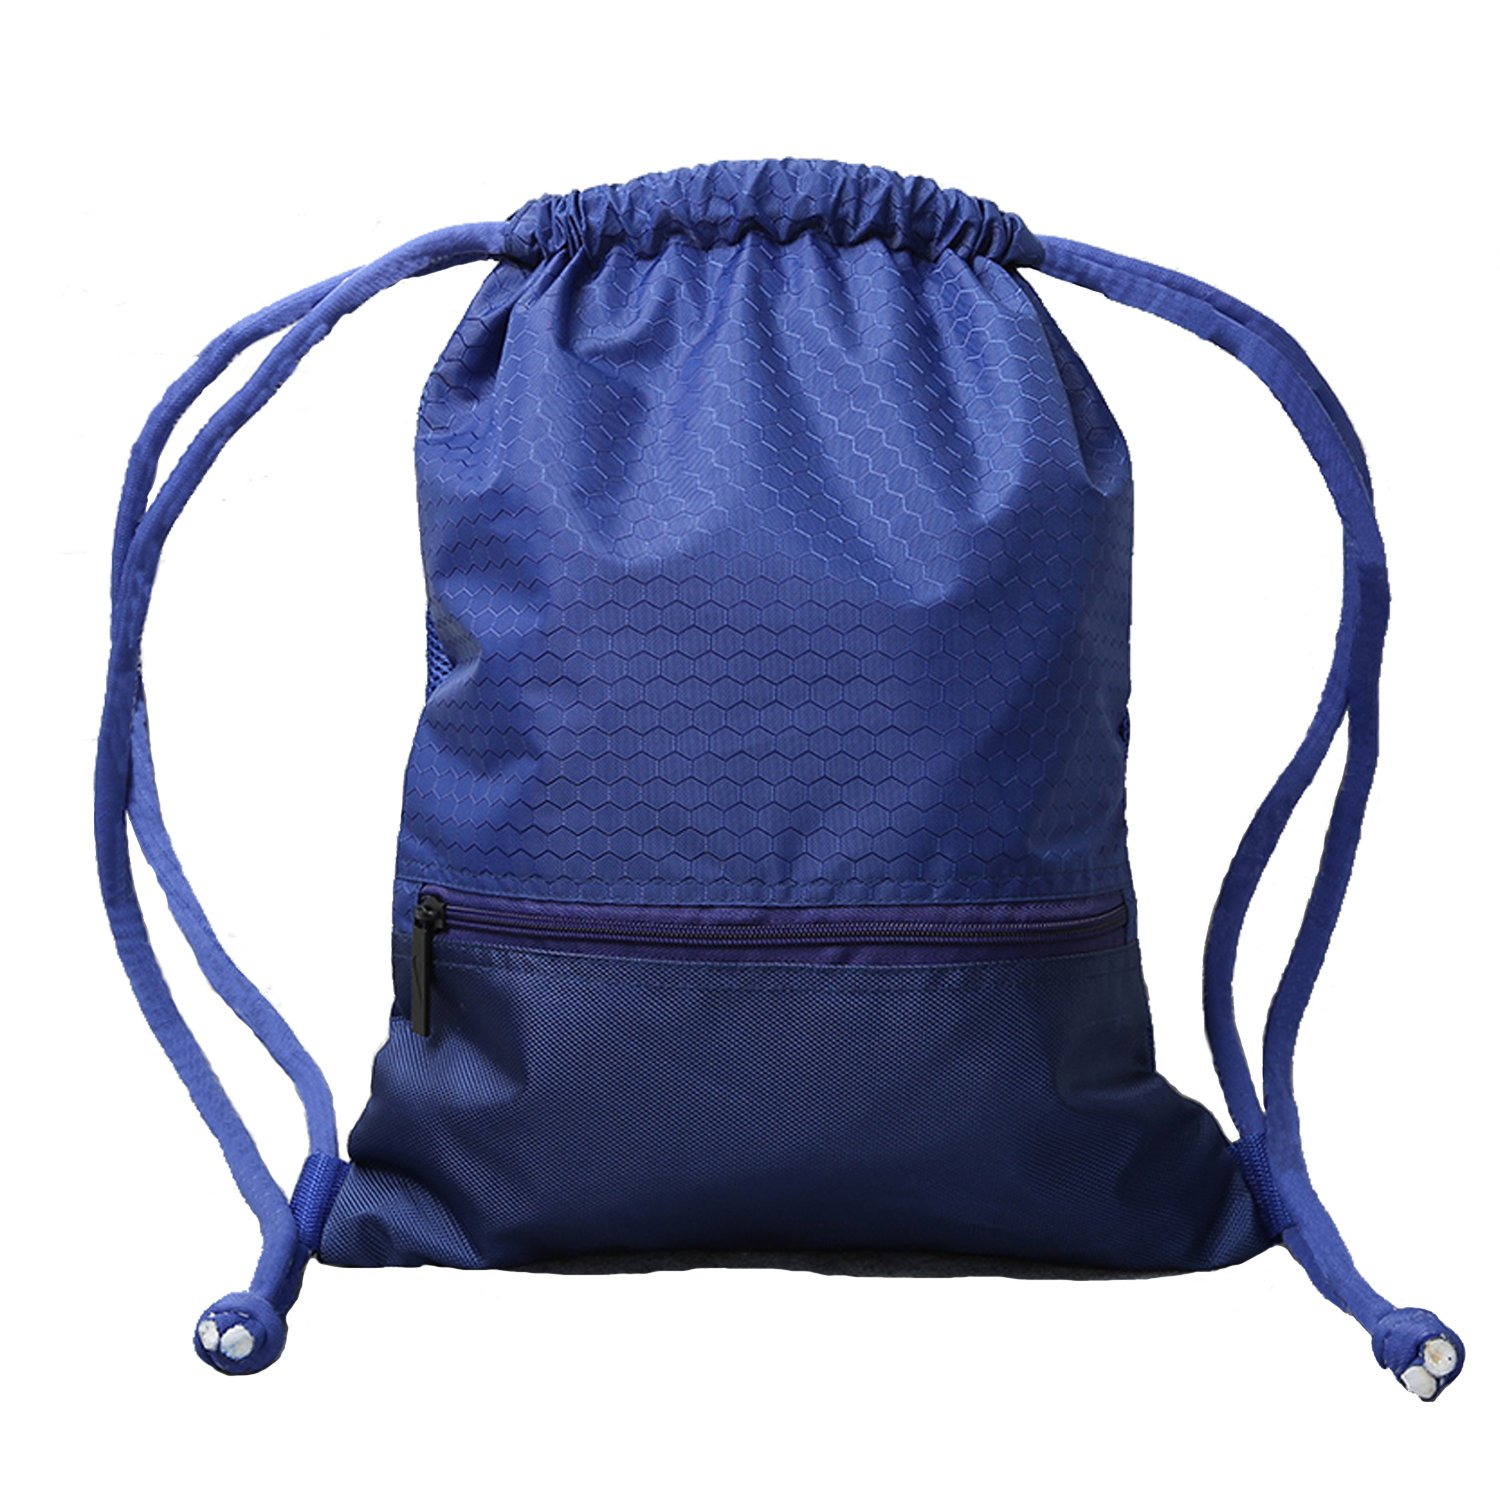 14a41bcbc2dd Double Sturdy Blue Drawstring Bag With Pockets Waterproof | For Gym Sports  & Workout Gear | Large Capacity String Backpack | 8 Colors